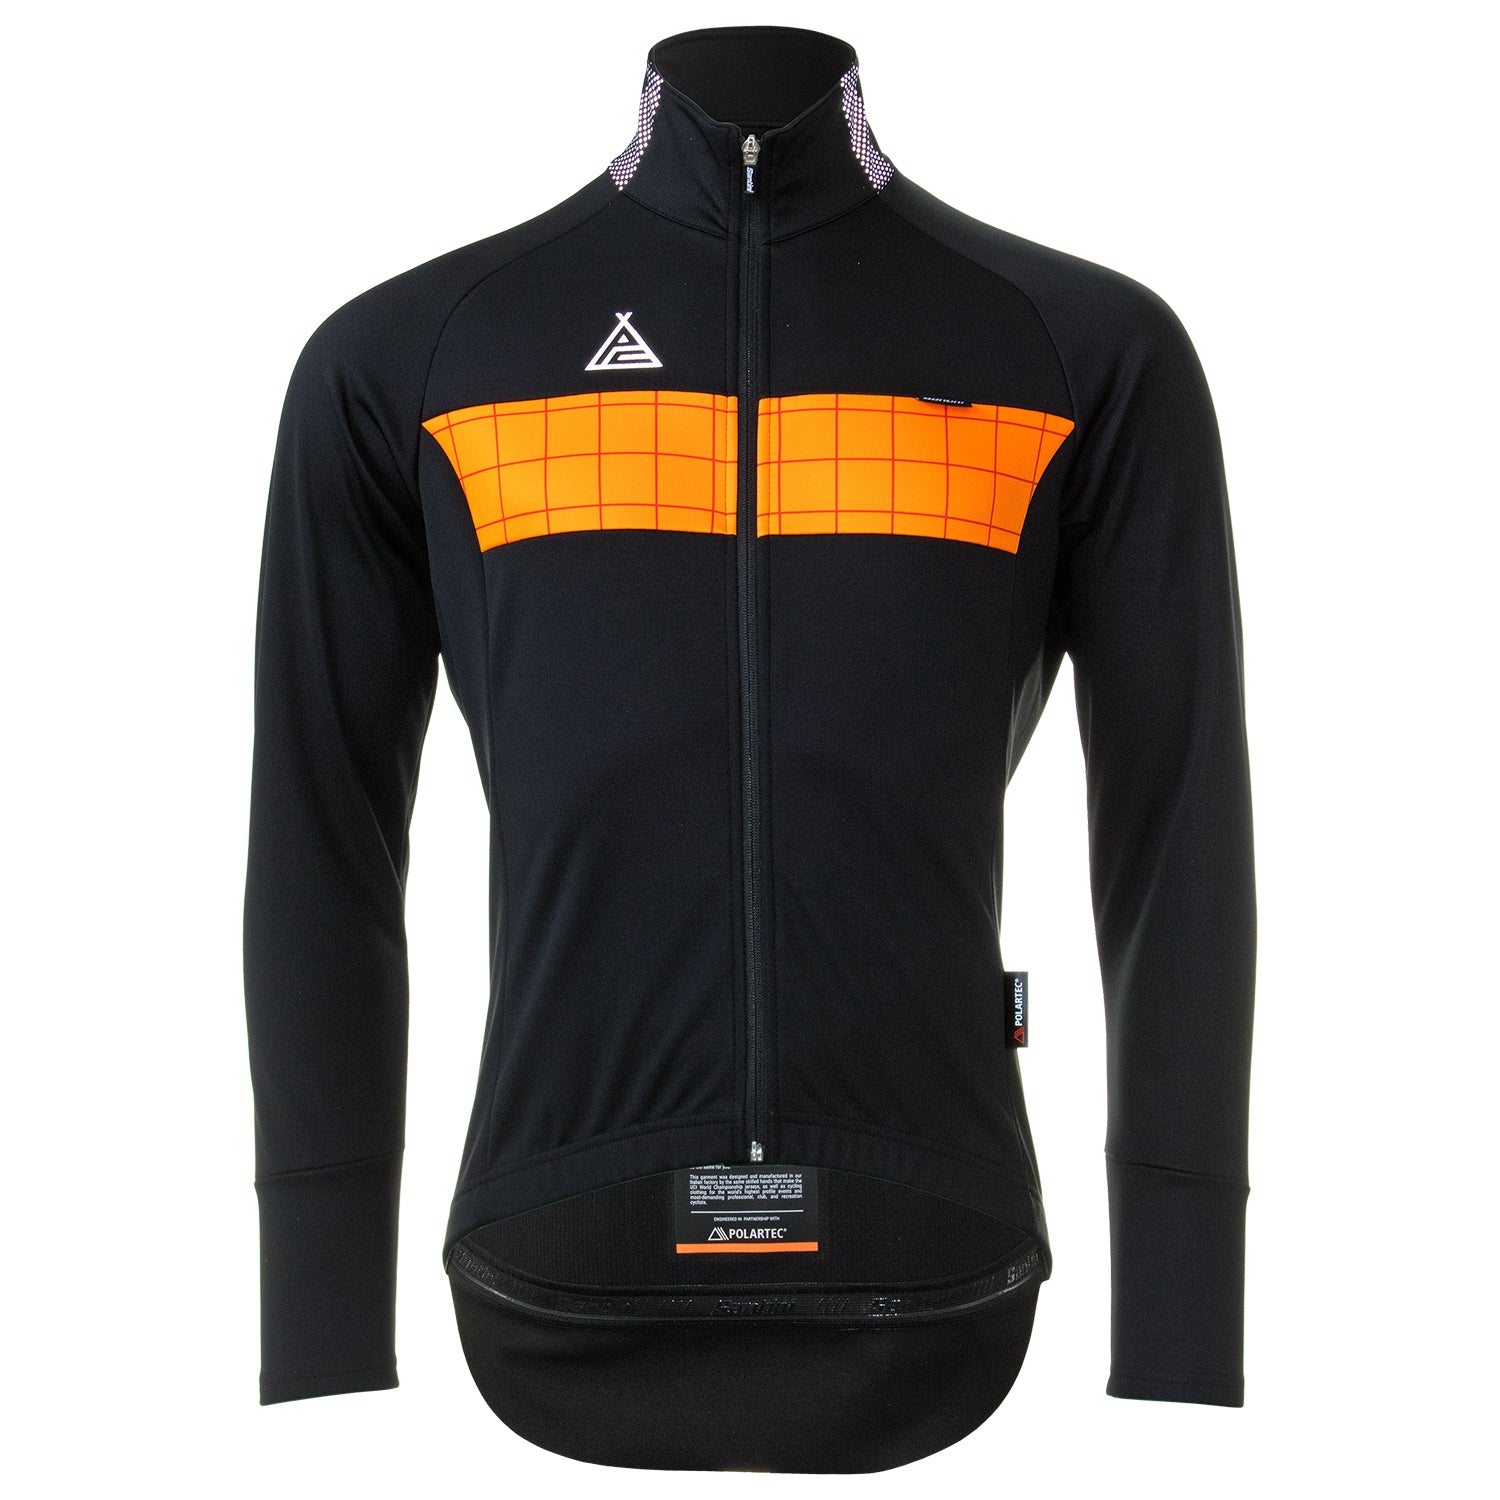 Prendas Ciclismo VEGA Winter Jacket